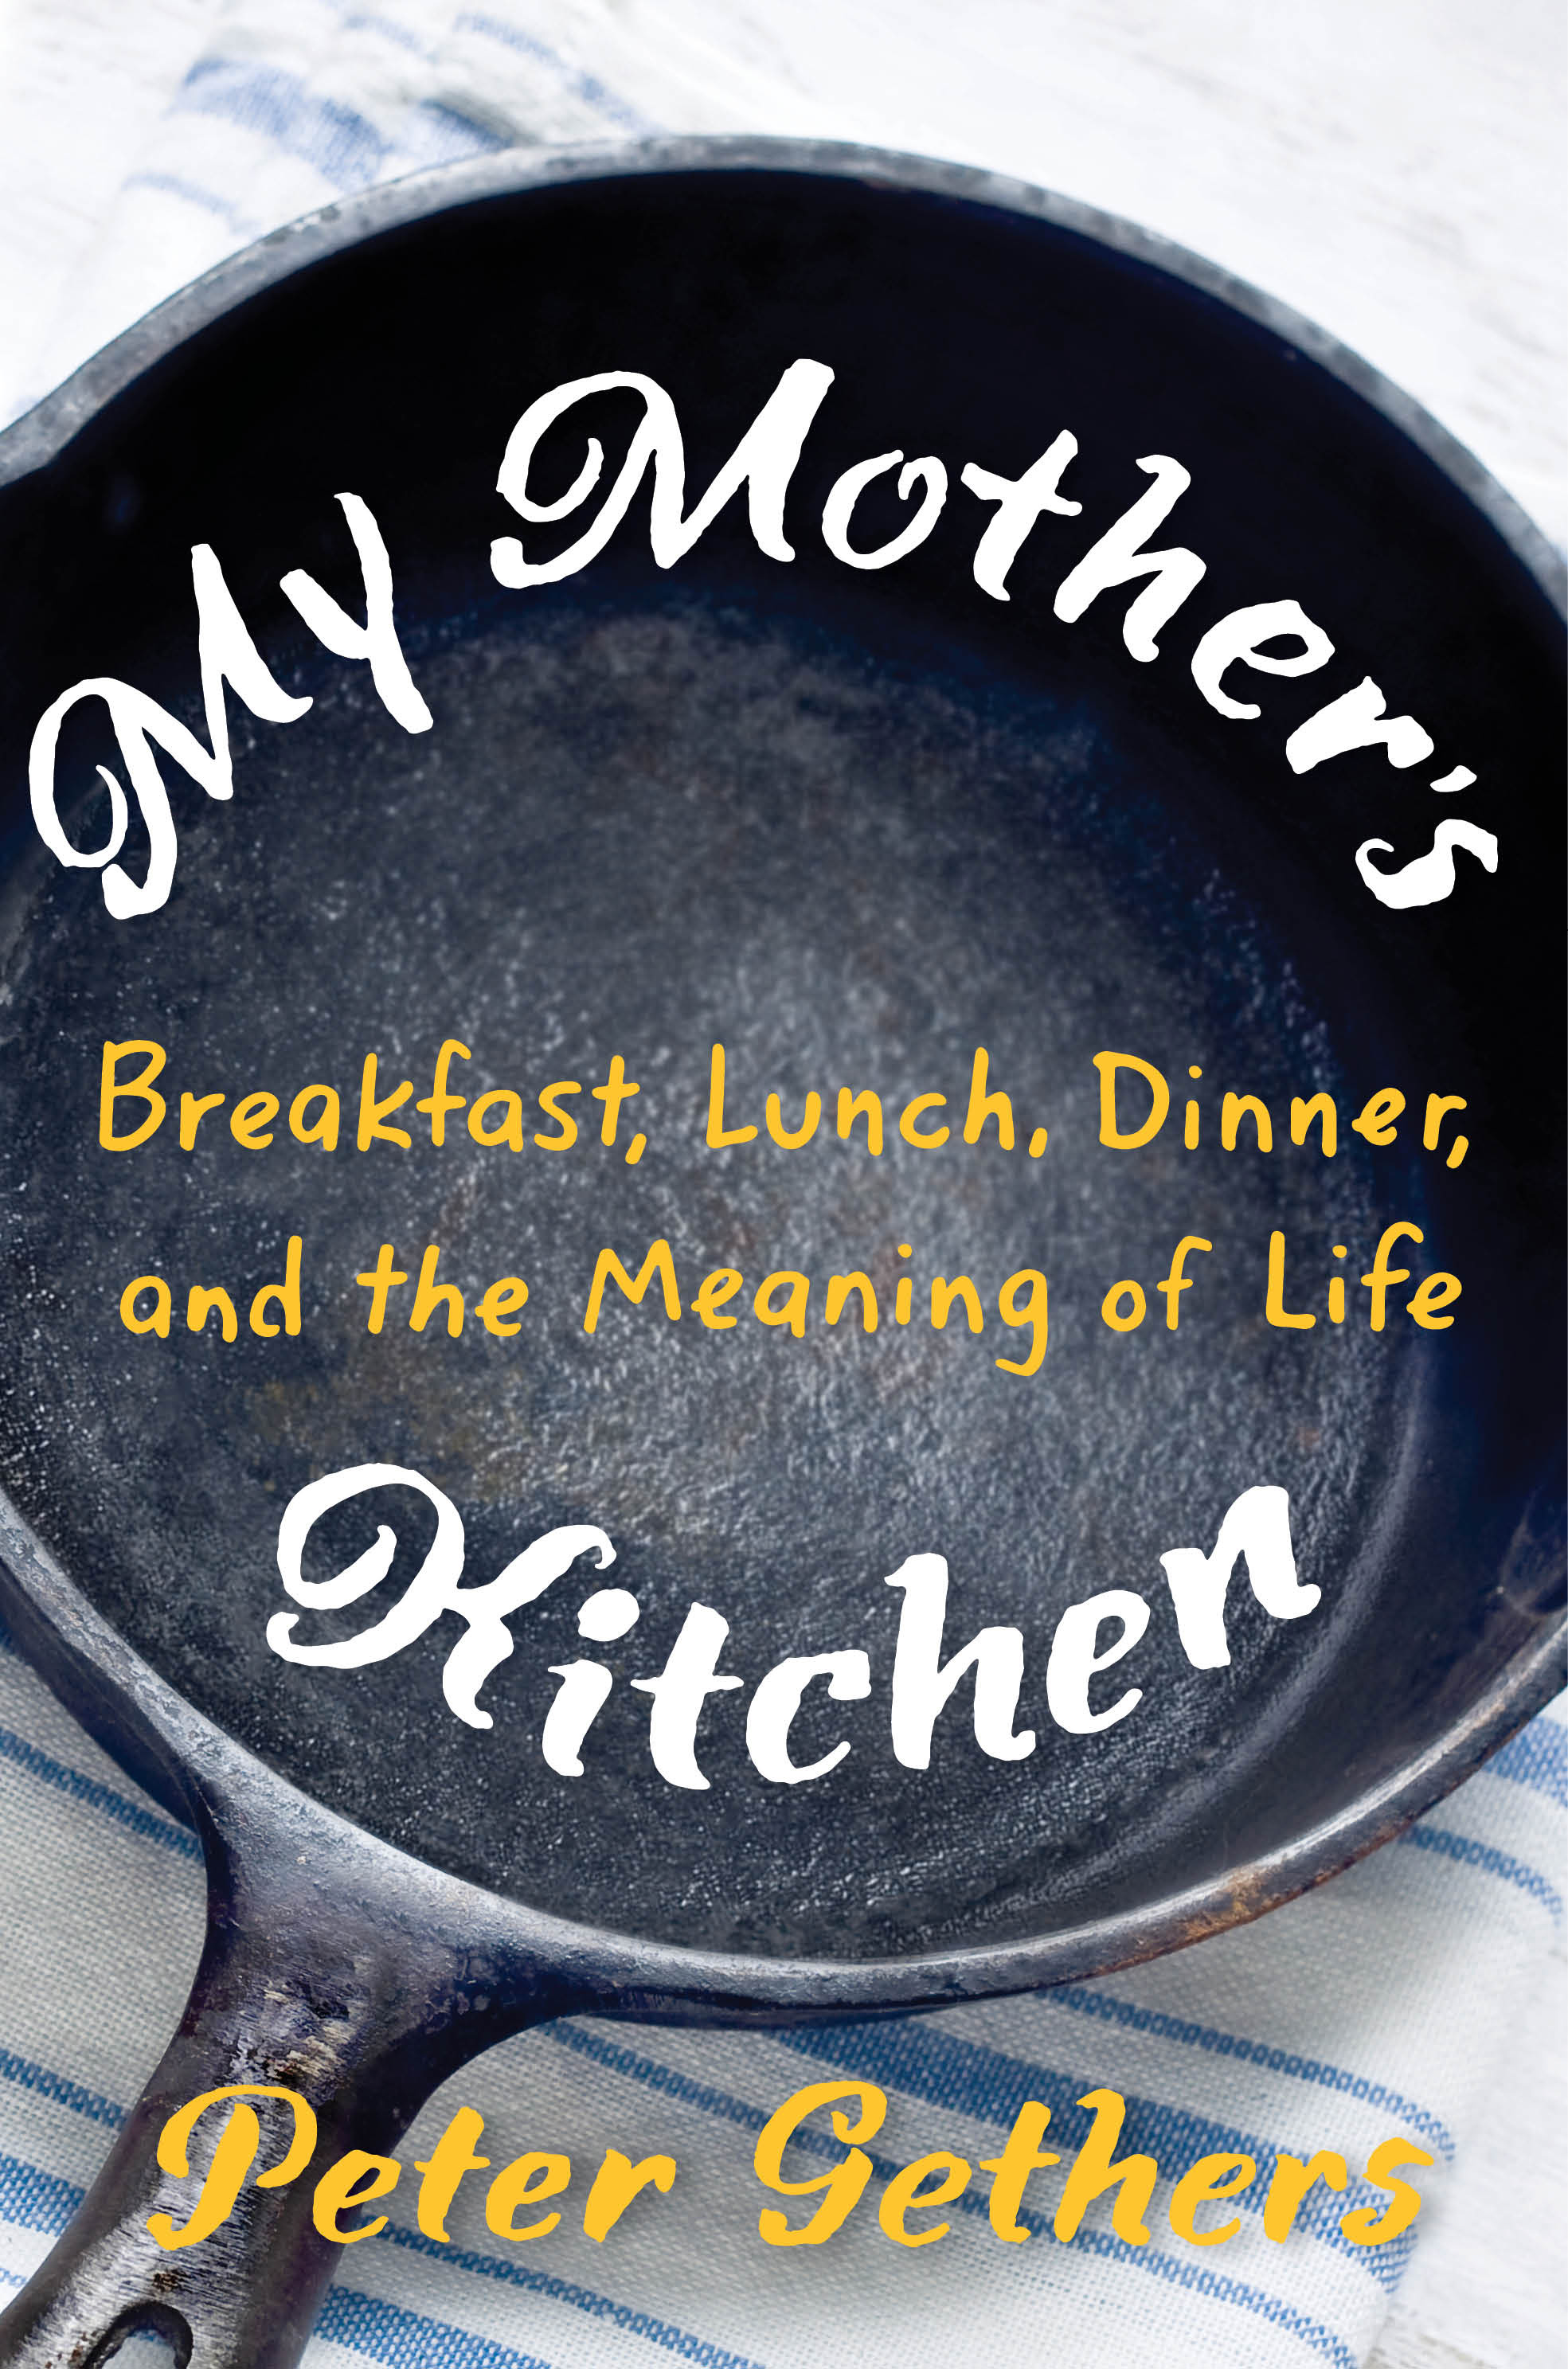 mymotherskitchen-cover-image-hi-res